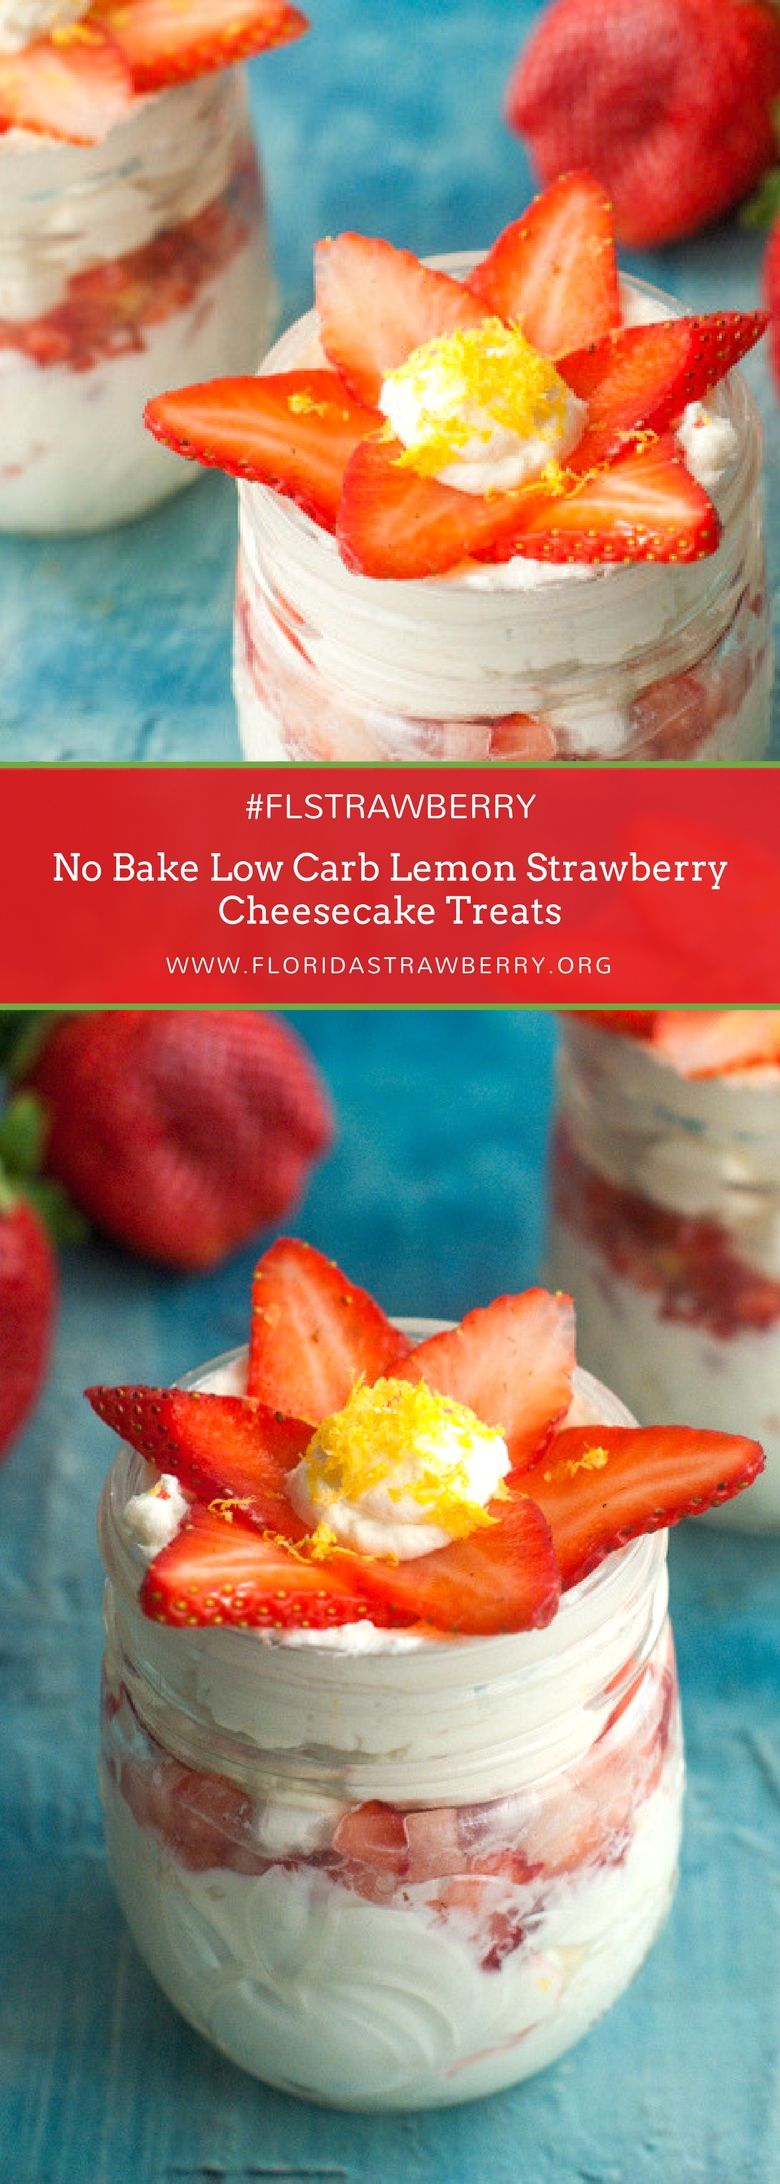 One of the best things about a low carb diet is the ability to make cheesecake-esque desserts and still stay on your diet. This no bake, low carb lemon strawberry cheesecake treat is case in point. Bright lemons go perfectly with plump, fresh strawberries. Strawberries and cheesecake are a match made in heaven! #strawberrydesserts #strawberryseason #dessertrecipes #dessert #FLStrawberry #strawberries